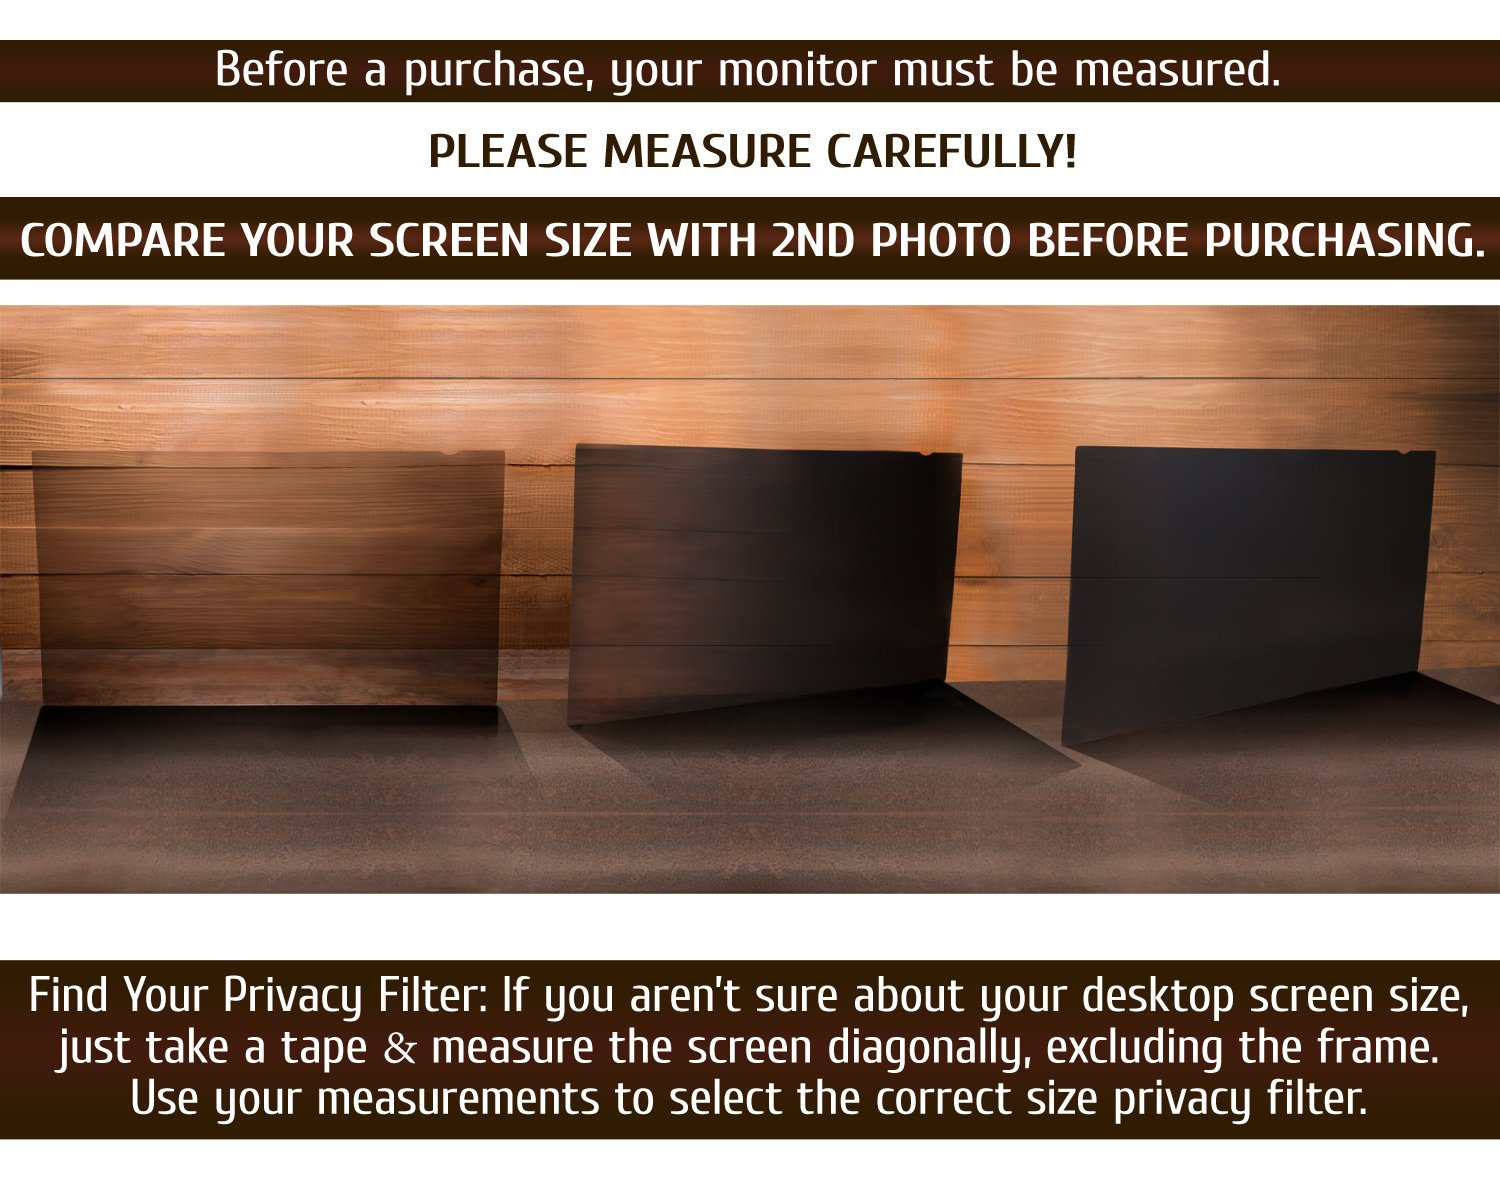 19.5 Inch Computer Privacy Screen Filter - 16:9 Aspect Ratio - for Widescreen Computer Monitor - Anti-Glare - Anti-Scratch Protector Film for Data confidentiality - Please Measure Carefully! by VINTEZ (Image #9)